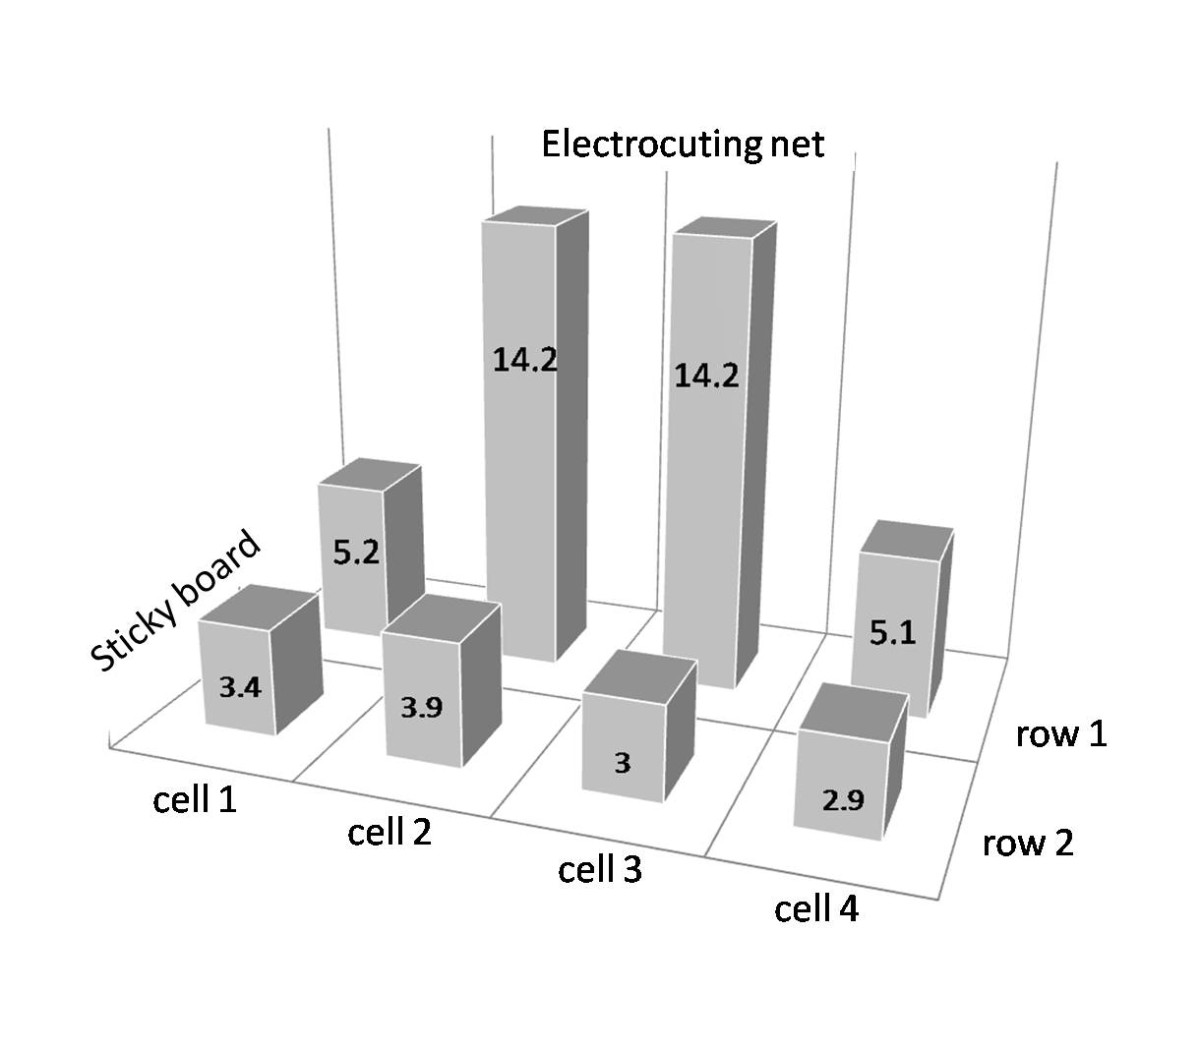 https://static-content.springer.com/image/art%3A10.1186%2F1475-2875-11-374/MediaObjects/12936_2012_Article_2522_Fig7_HTML.jpg